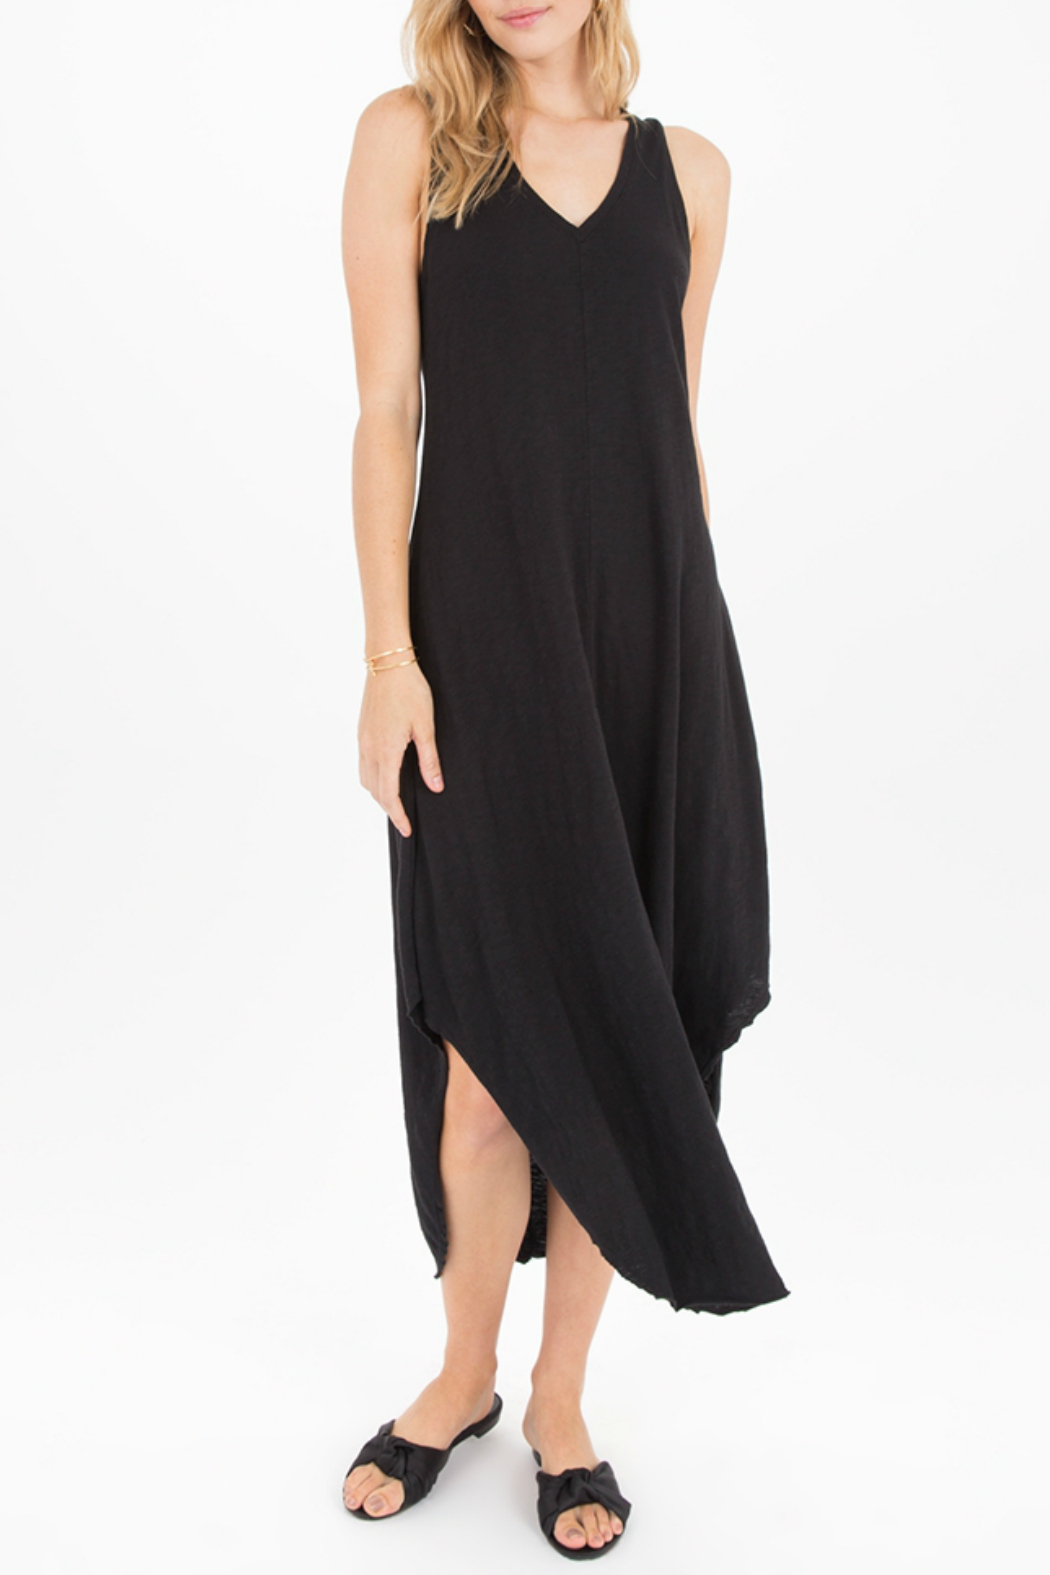 z supply The Reverie Maxi Dress - Front Cropped Image